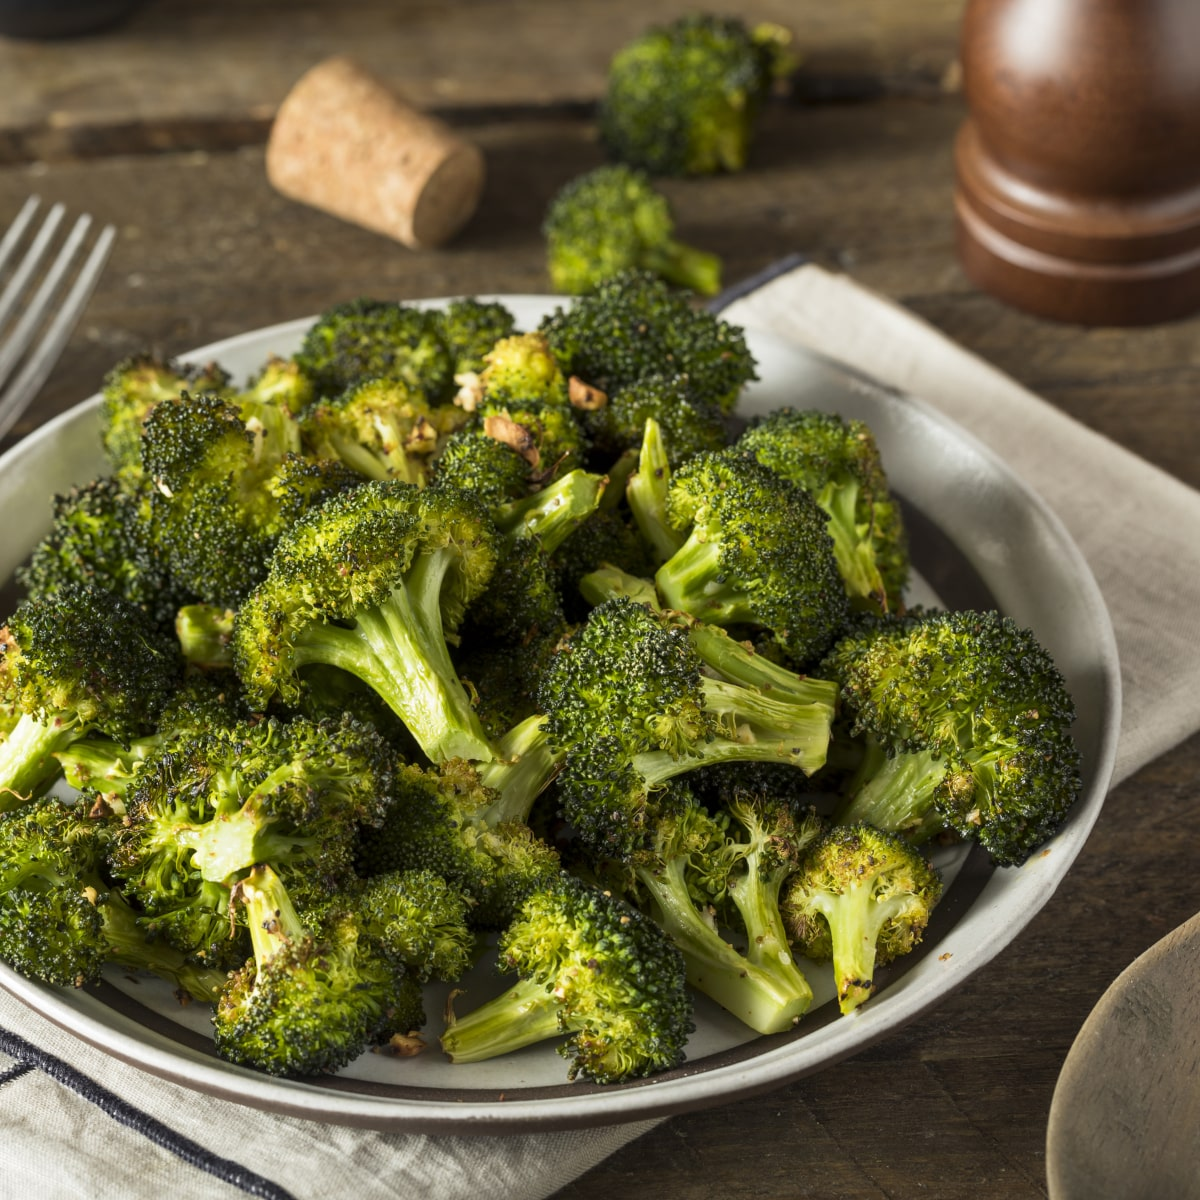 Sautéed Broccoli with garlic, red chili flakes and olive oil. Seasoned with salt and pepper.